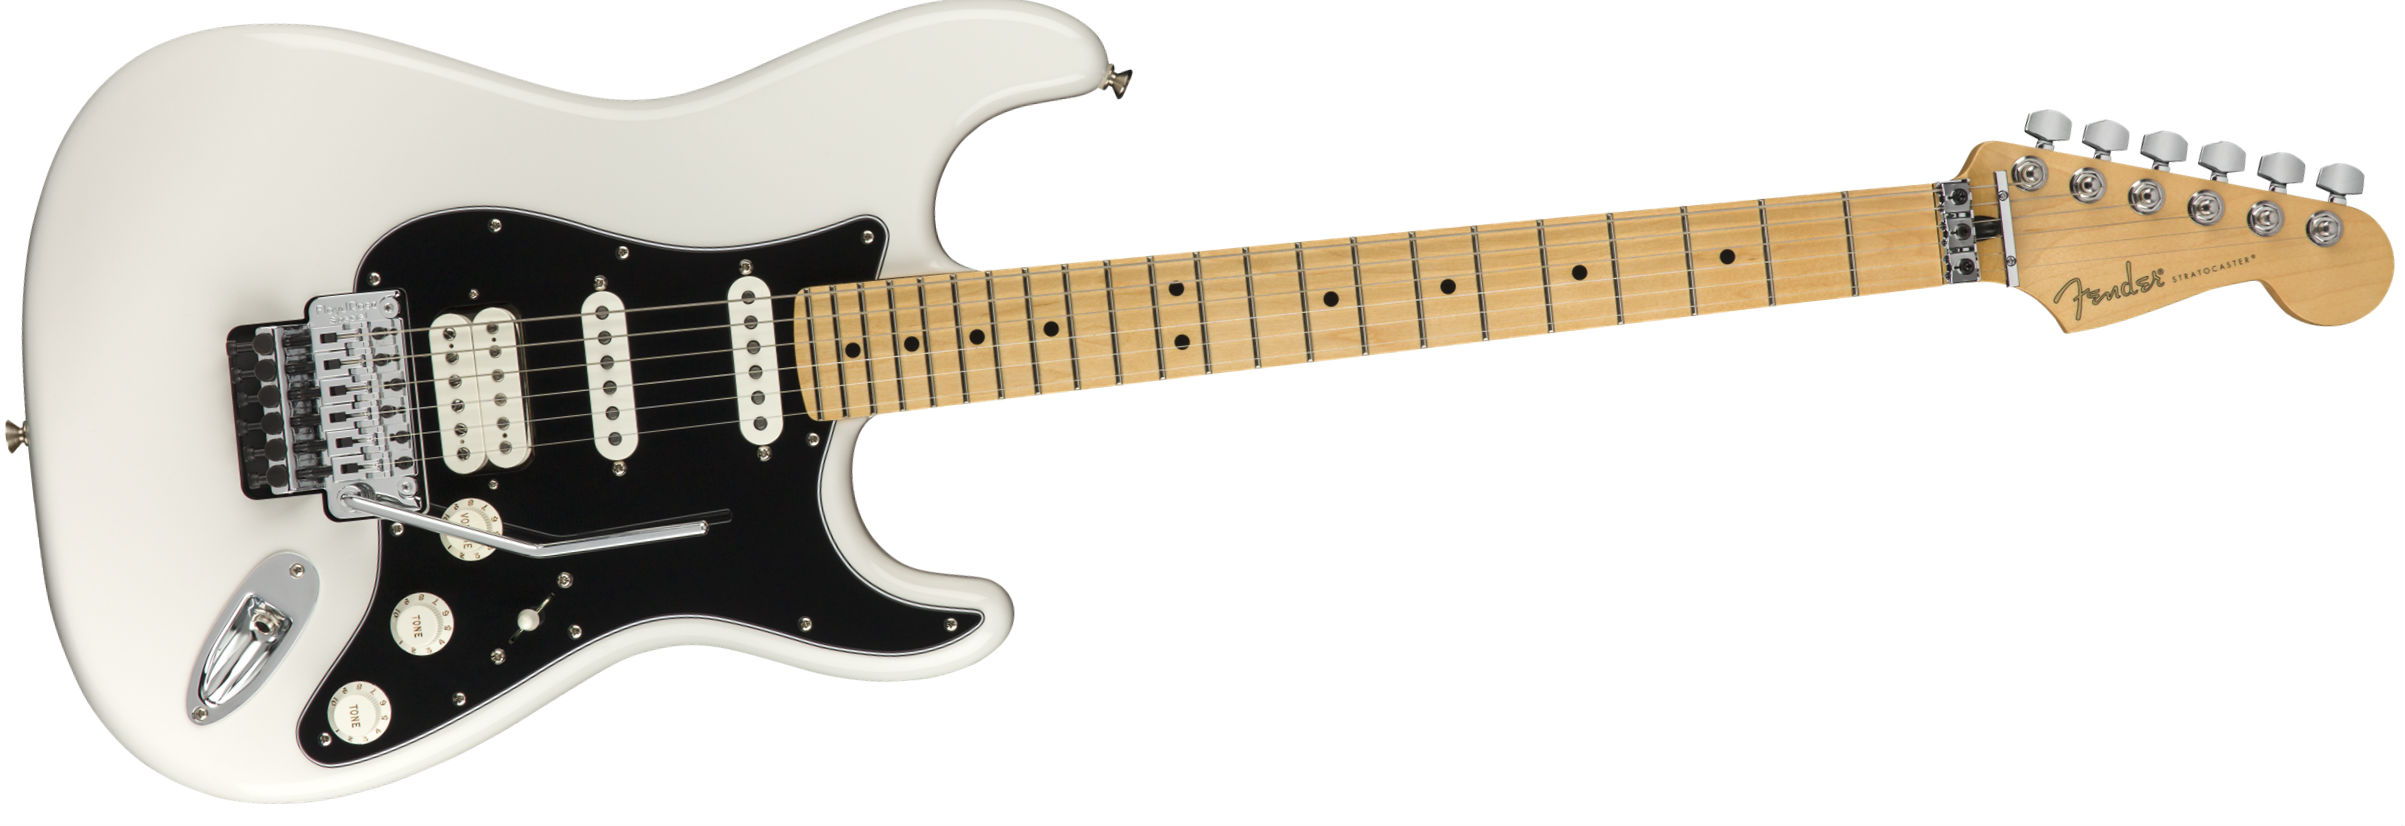 FENDER-Player-Stratocaster-Floyd-Rose-MN-Polar-White-1149402515-sku-24250